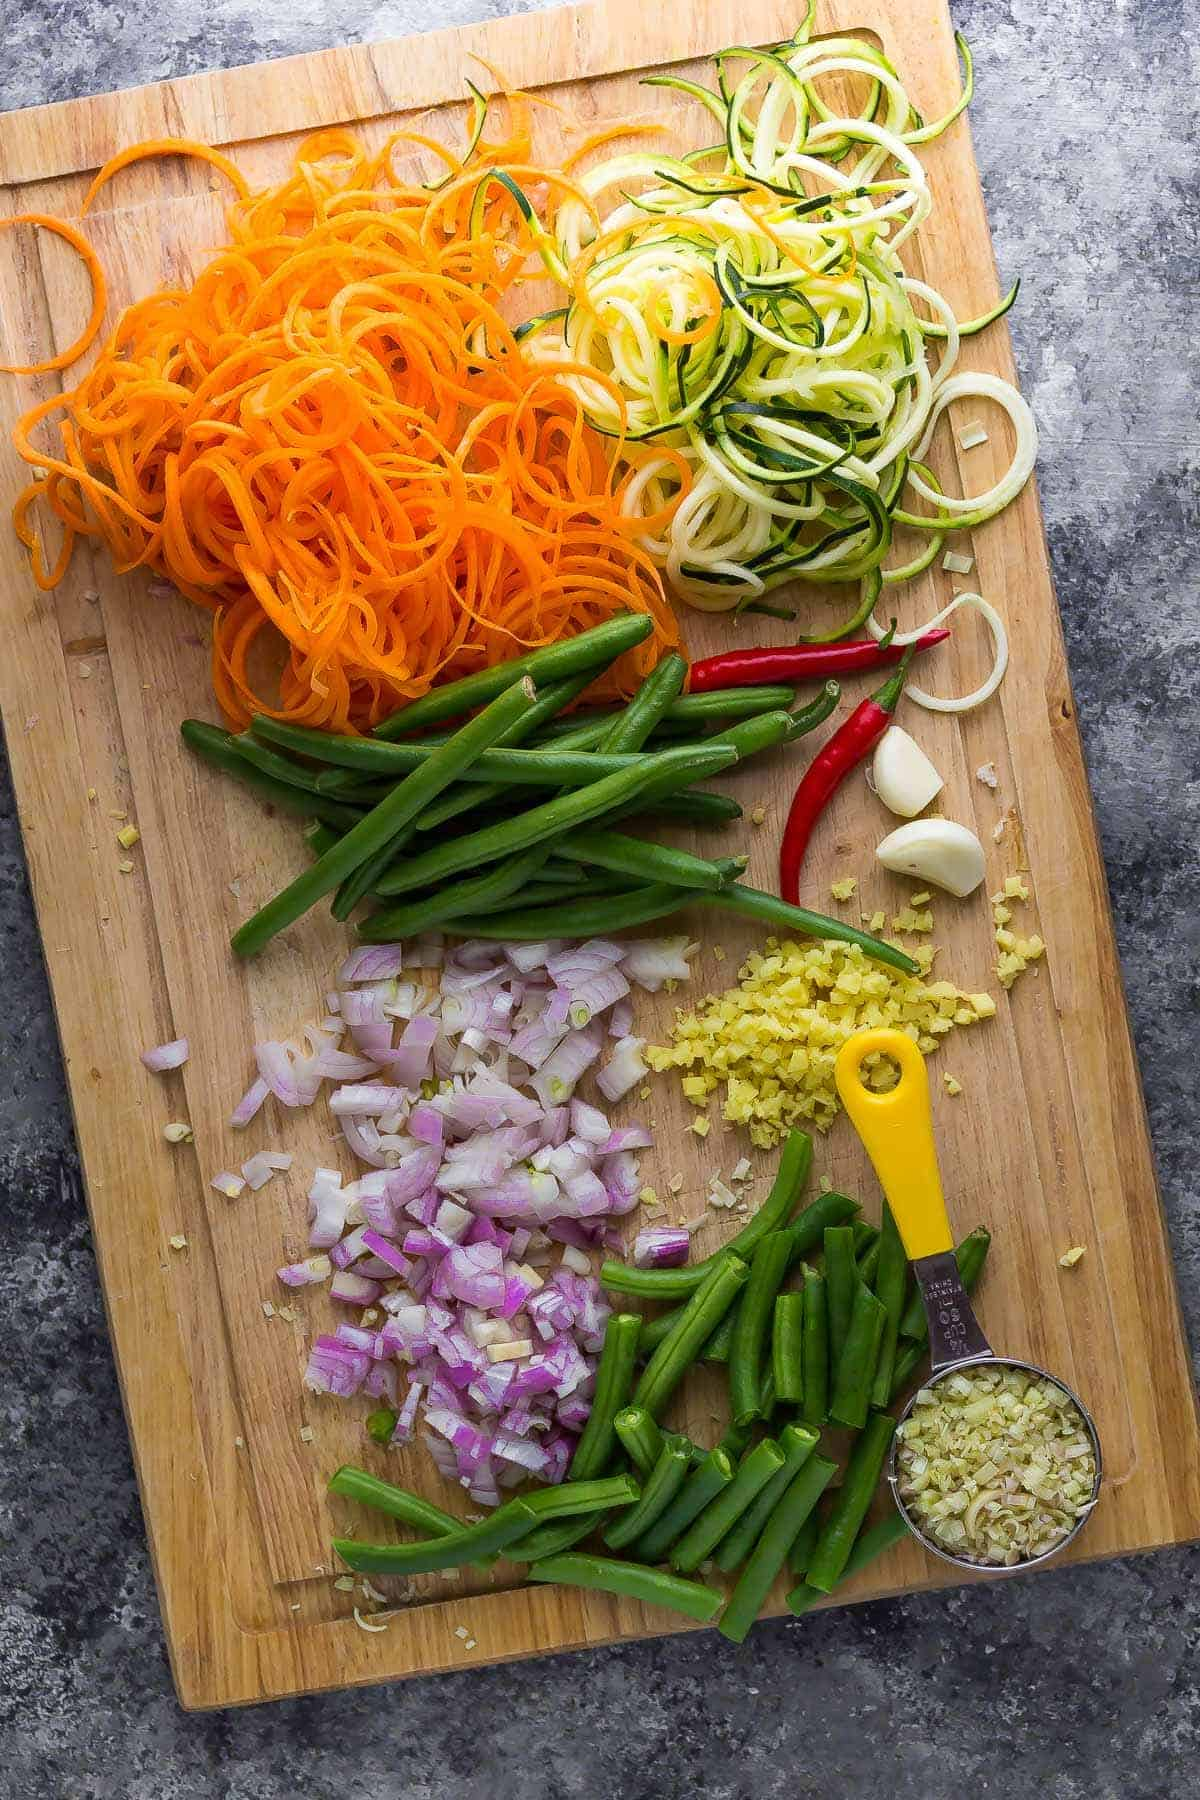 Chopped and prepared stir fry vegetables on a chopping board